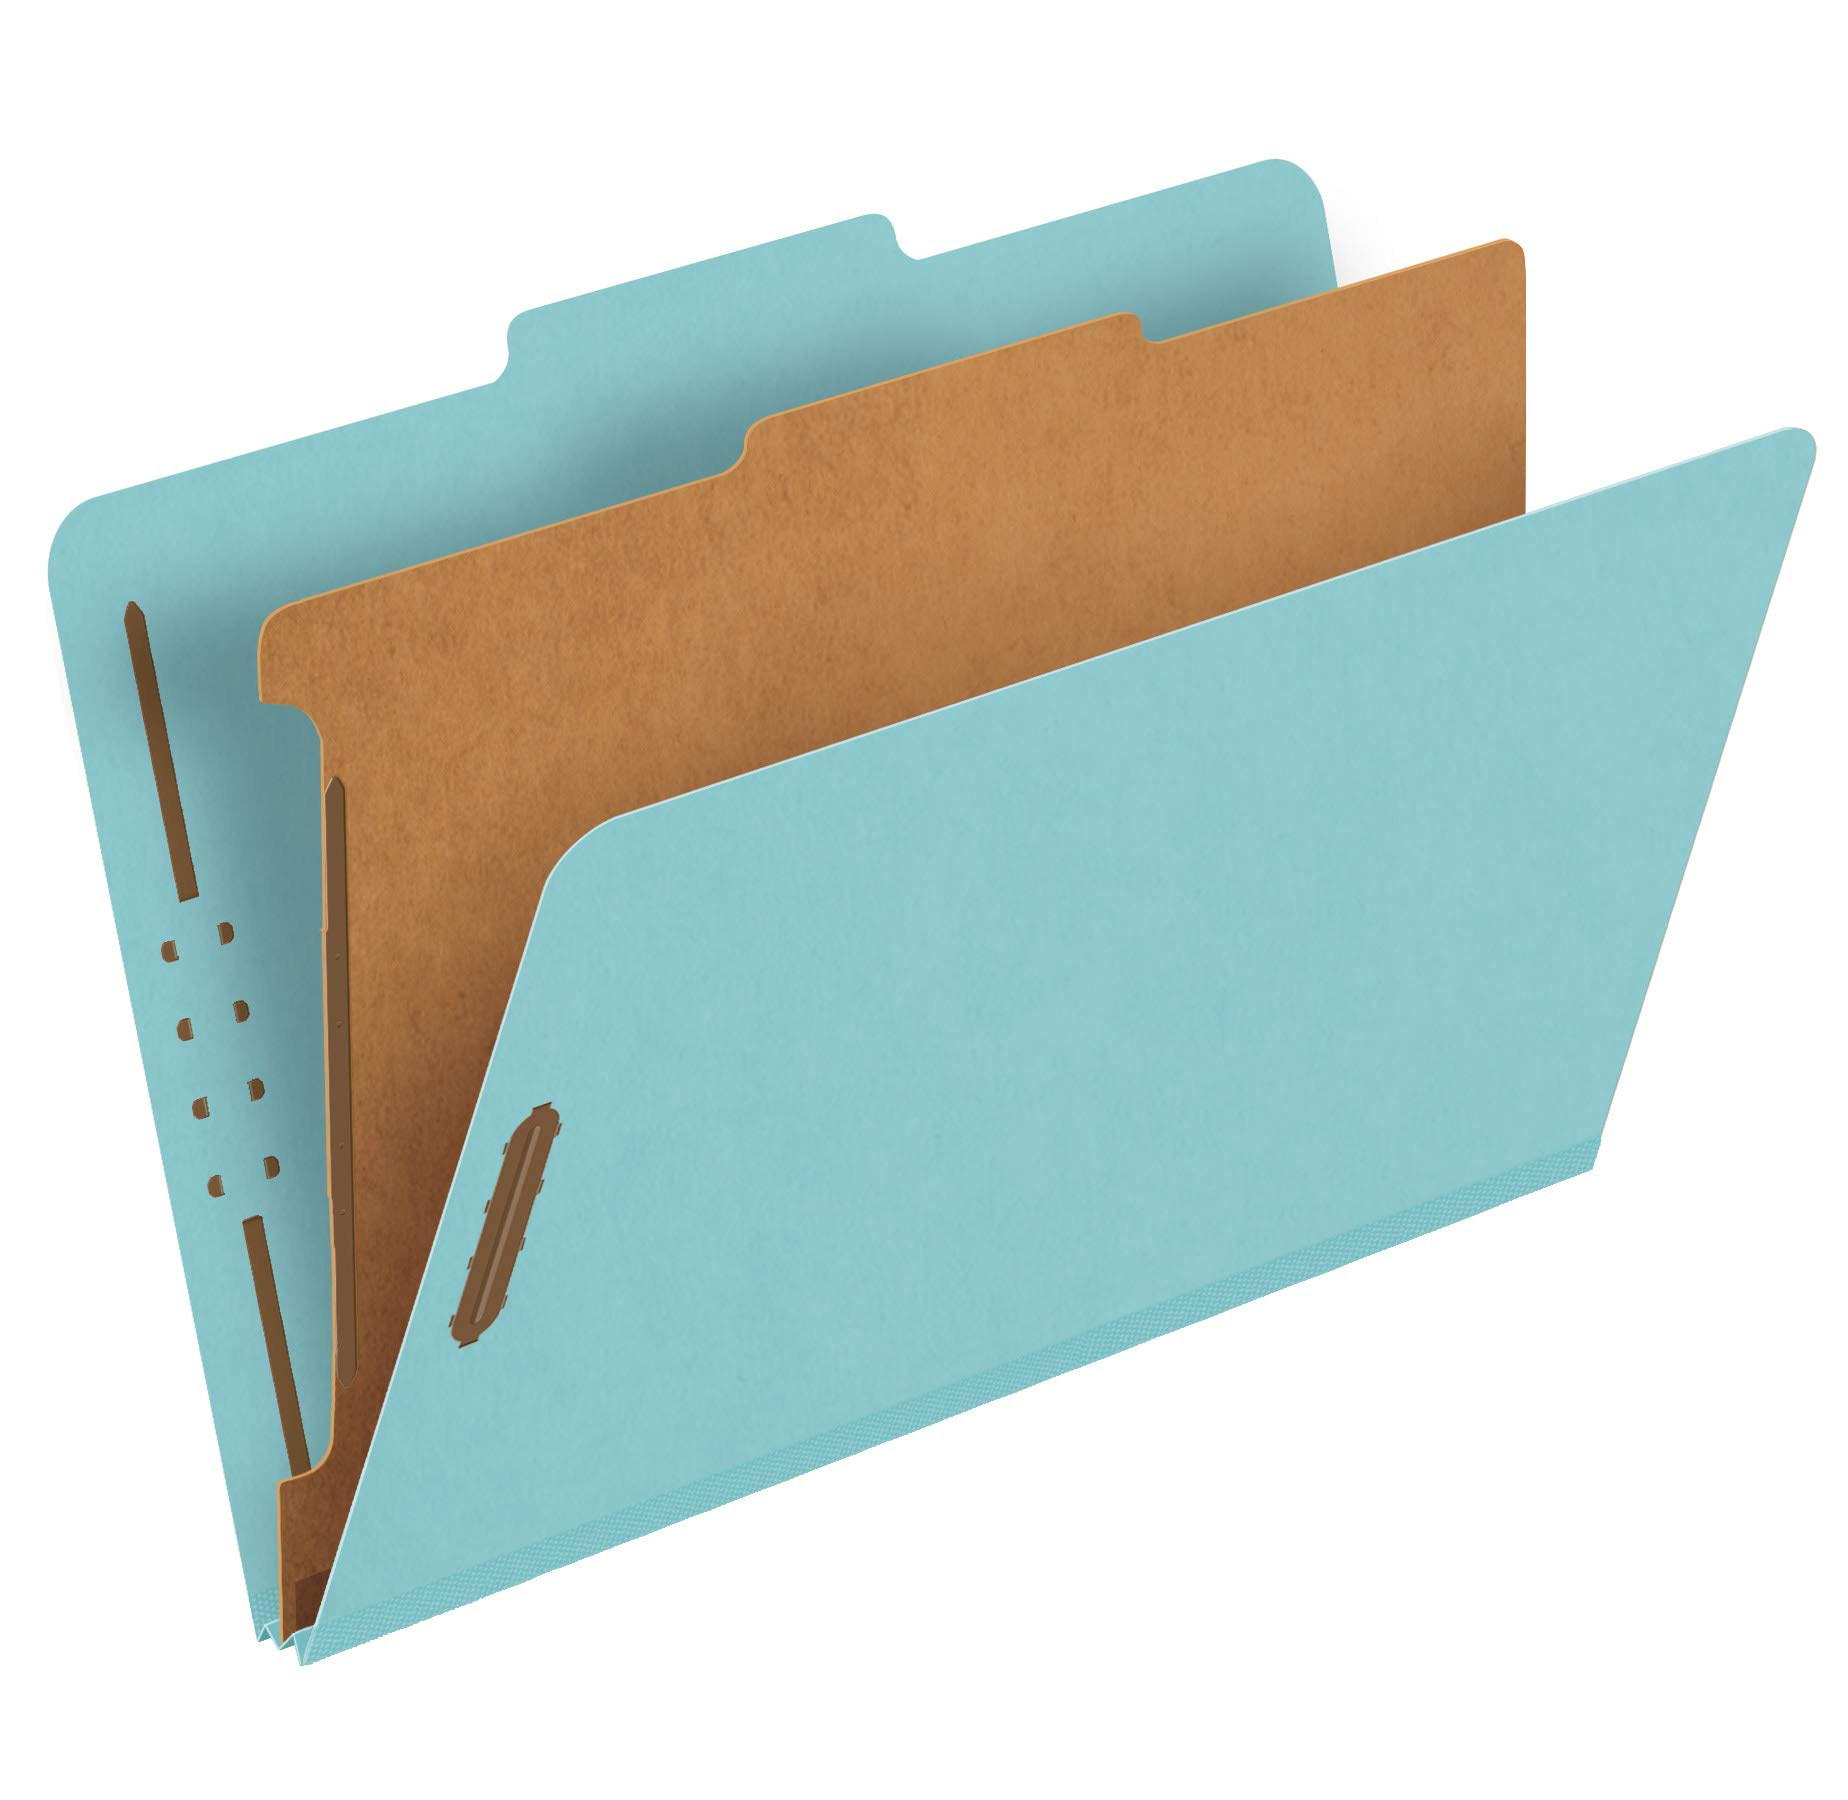 Pendaflex Recycled Classification File Folders, 1 Divider, 2'' Embedded Fasteners, 2/5 Tab Cut, Legal Size, Light Blue, Box of 10 (28777R) by Pendaflex